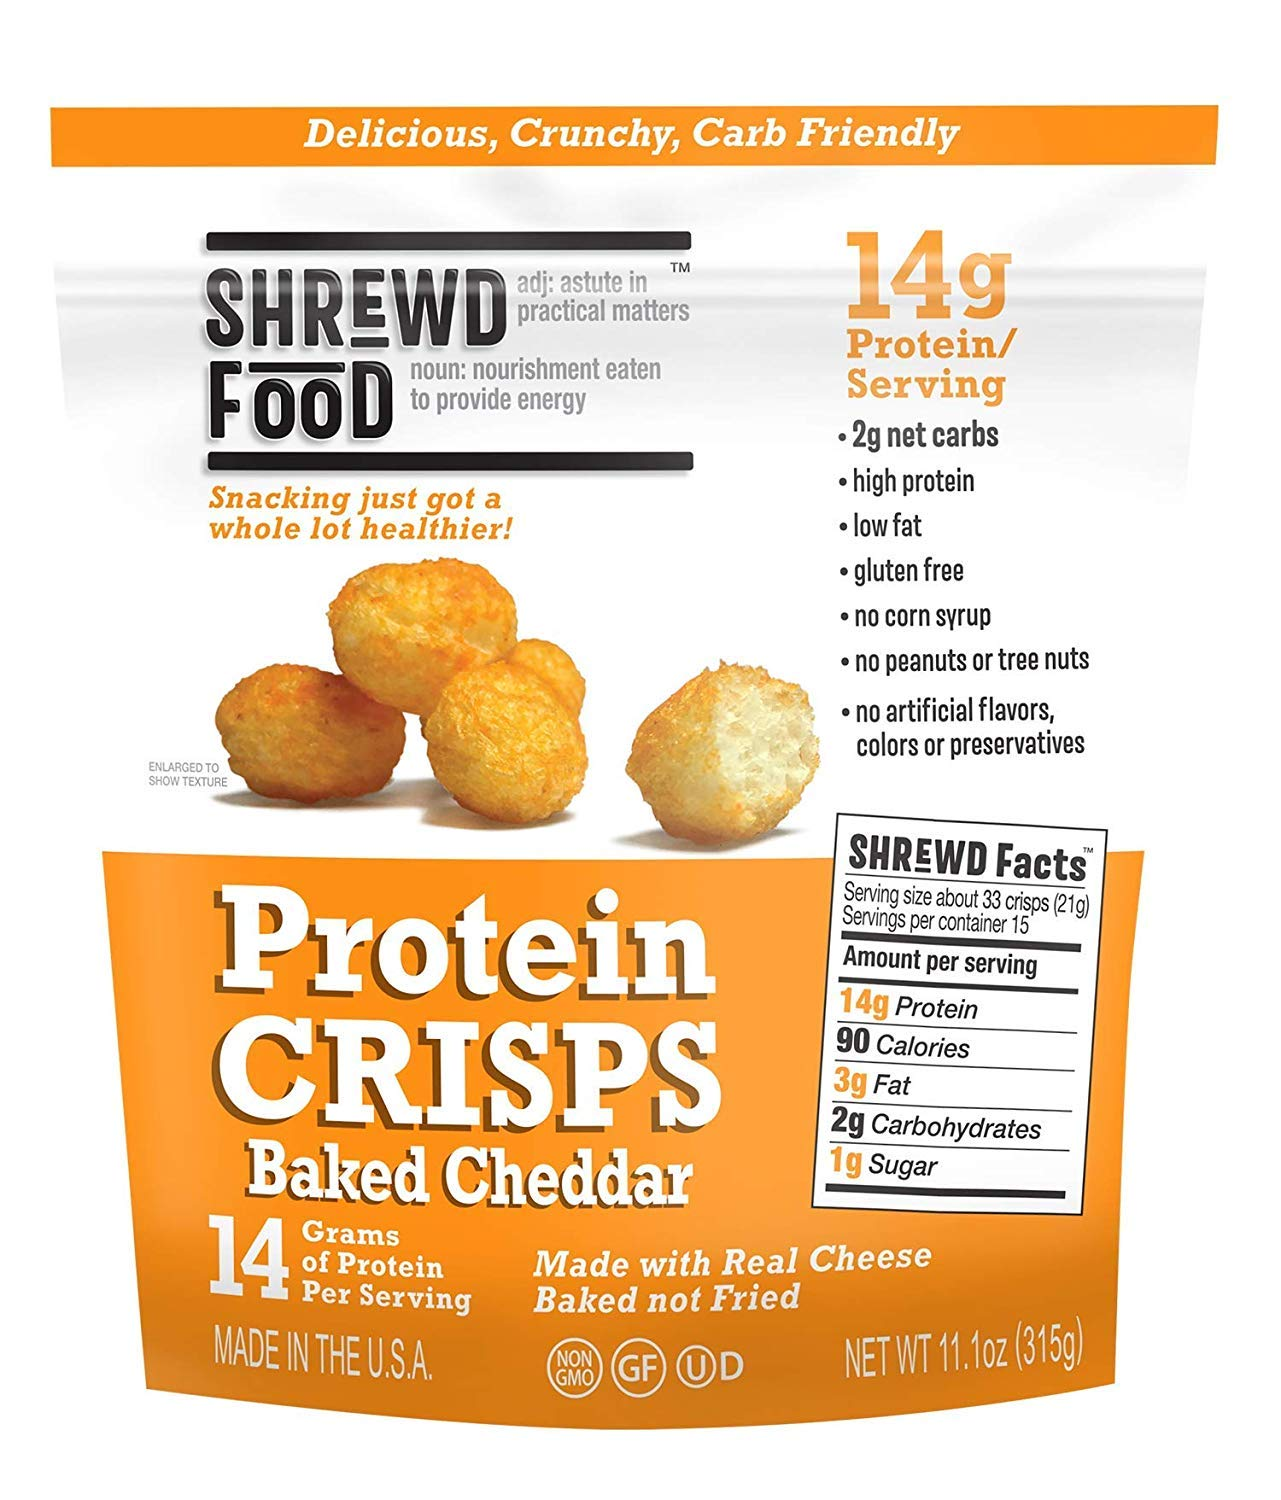 Shrewd Food Protein Puffs, Low Carb Puffs, Keto Friendly Crunchy Snack, Dehydrated Cheese Puff, Gluten Free, Soy Free, Peanut Free, 14g Protein 2g Carbs/Serving, Baked Cheddar, Club Size